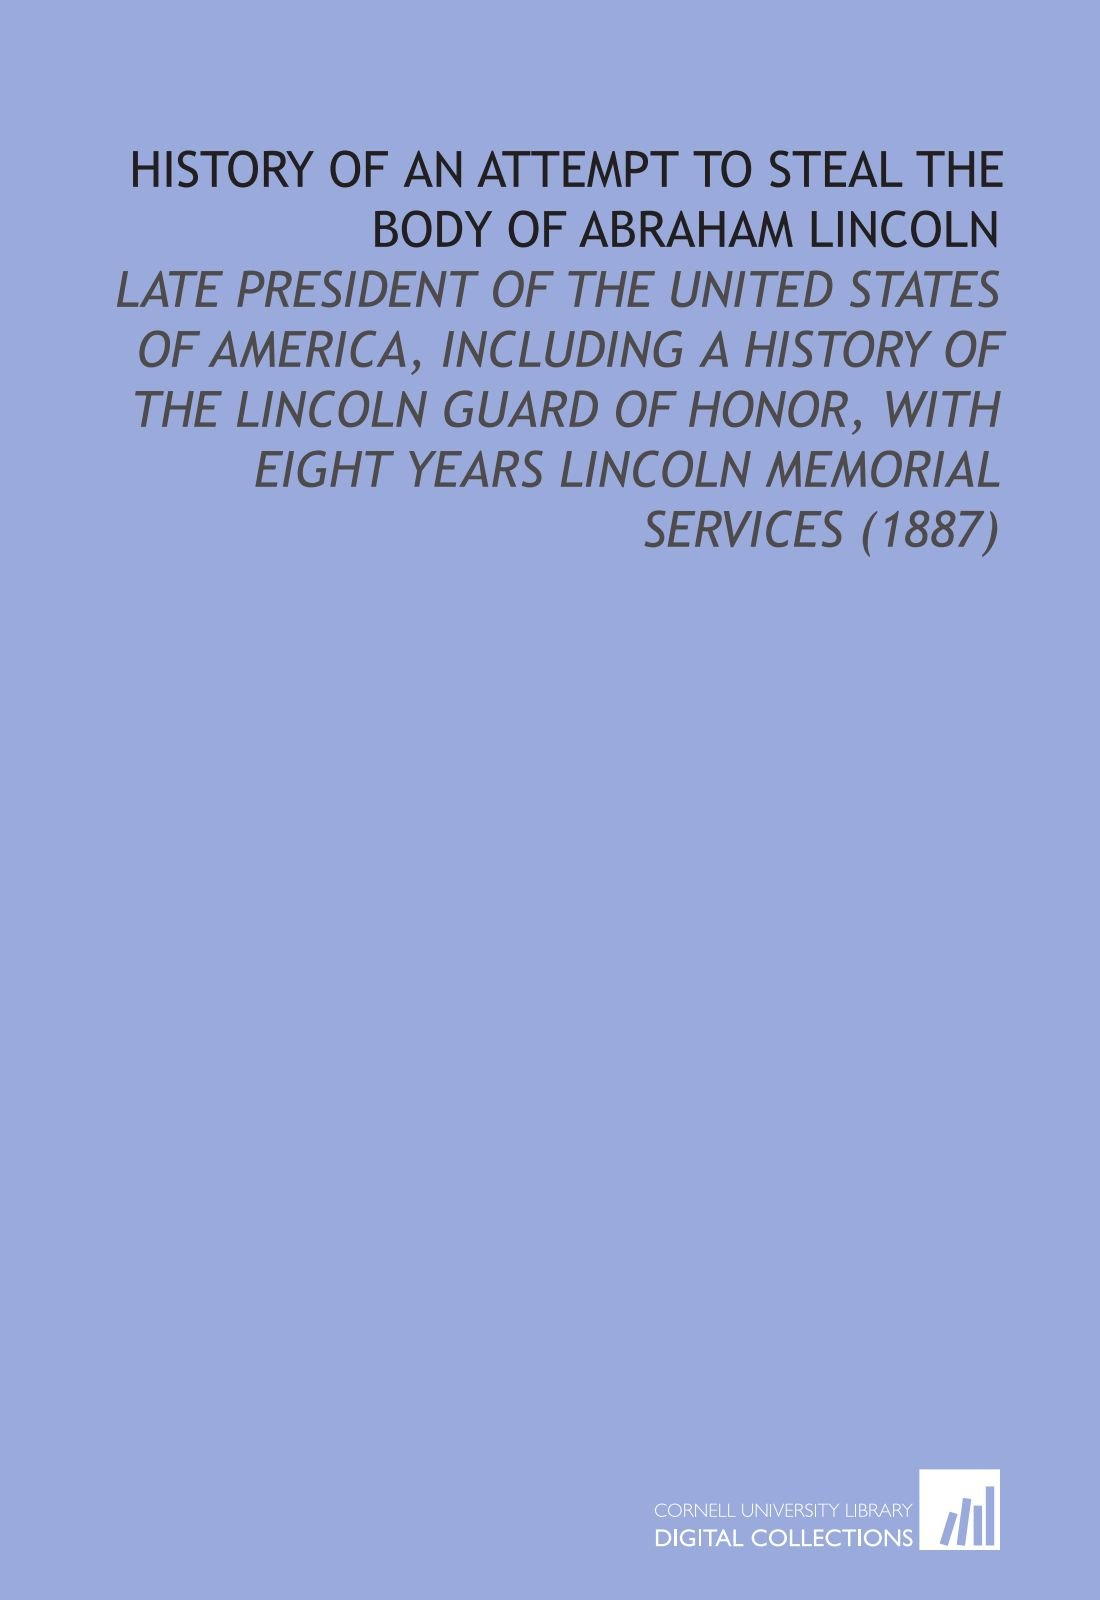 Download History of an Attempt to Steal the Body of Abraham Lincoln: Late President of the United States of America, Including a History of the Lincoln Guard ... Eight Years Lincoln Memorial Services (1887) ebook